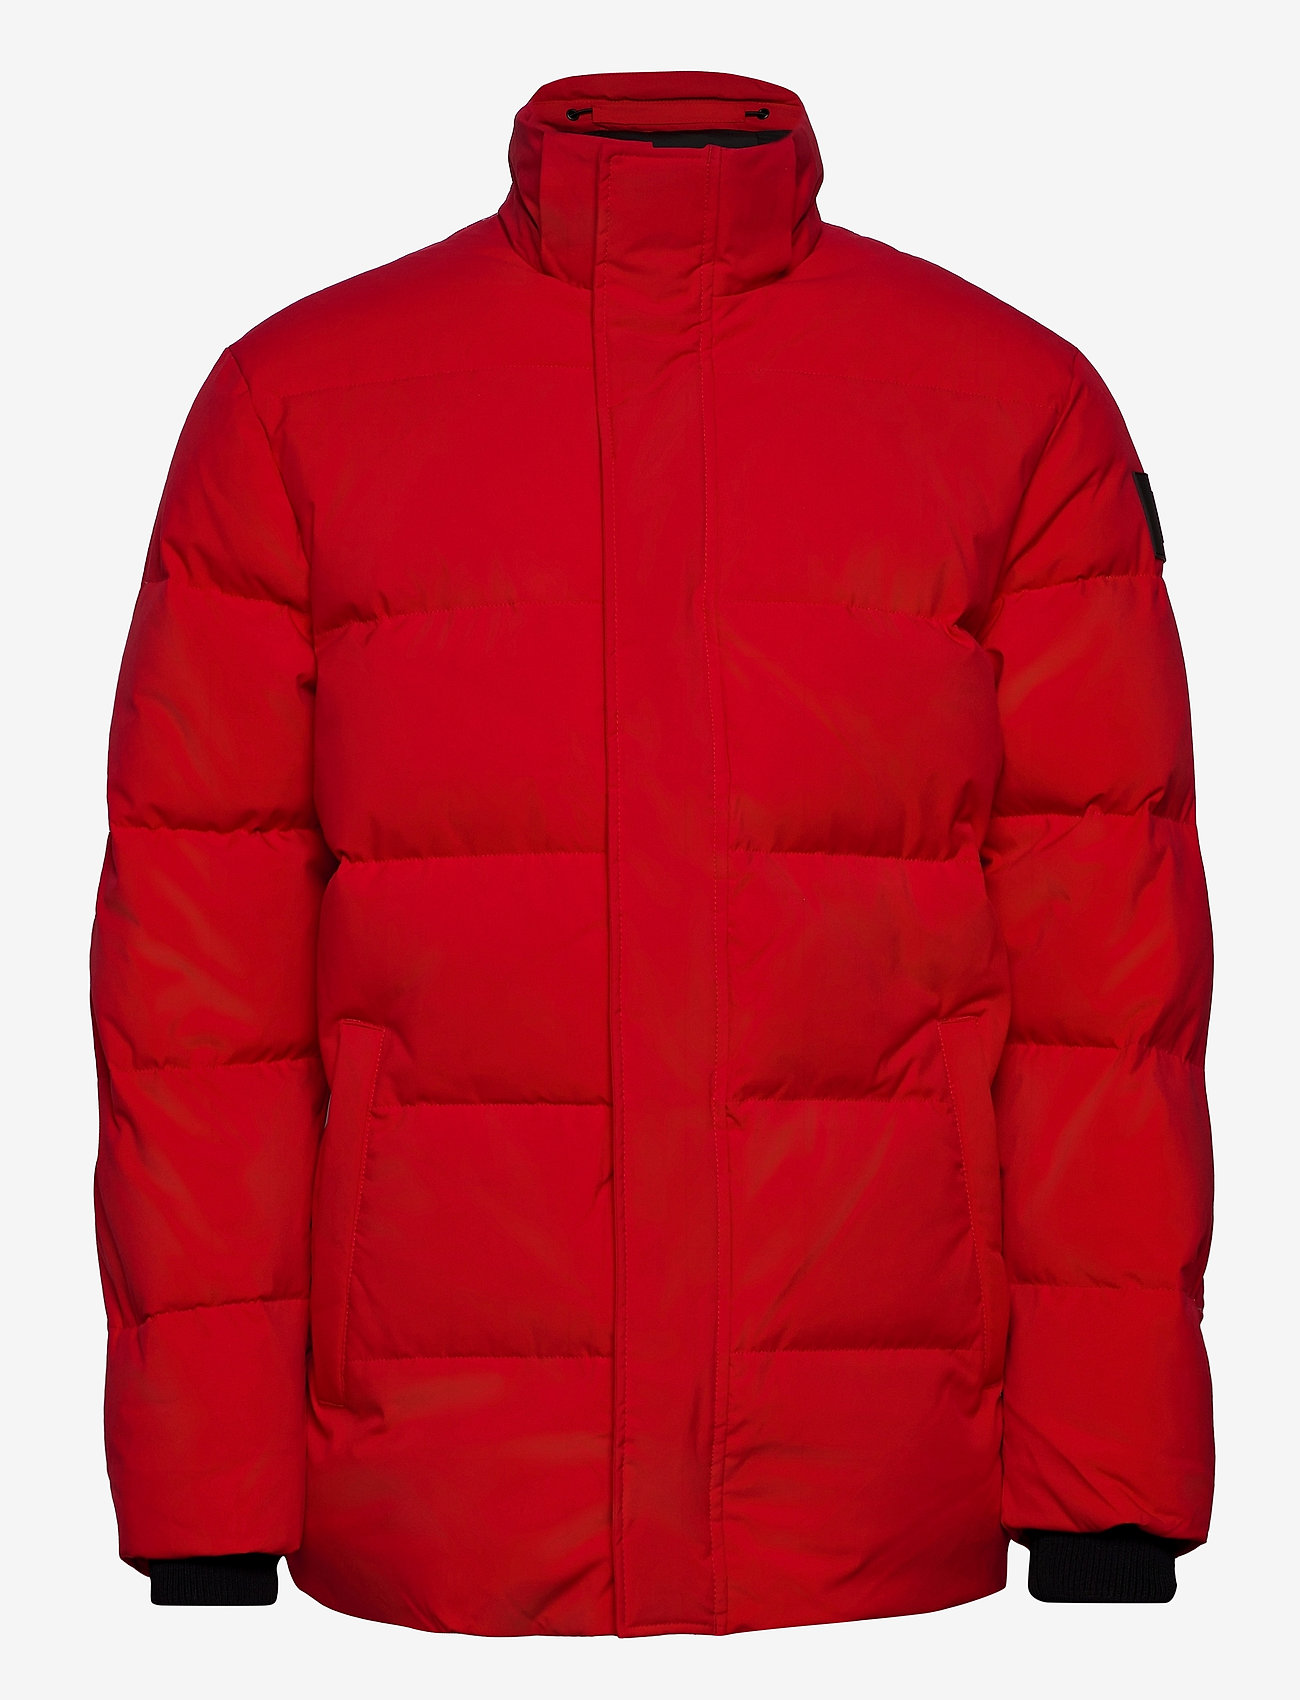 Mason Down Jacket (Red/red) (449 €) - Les Deux d3wUf